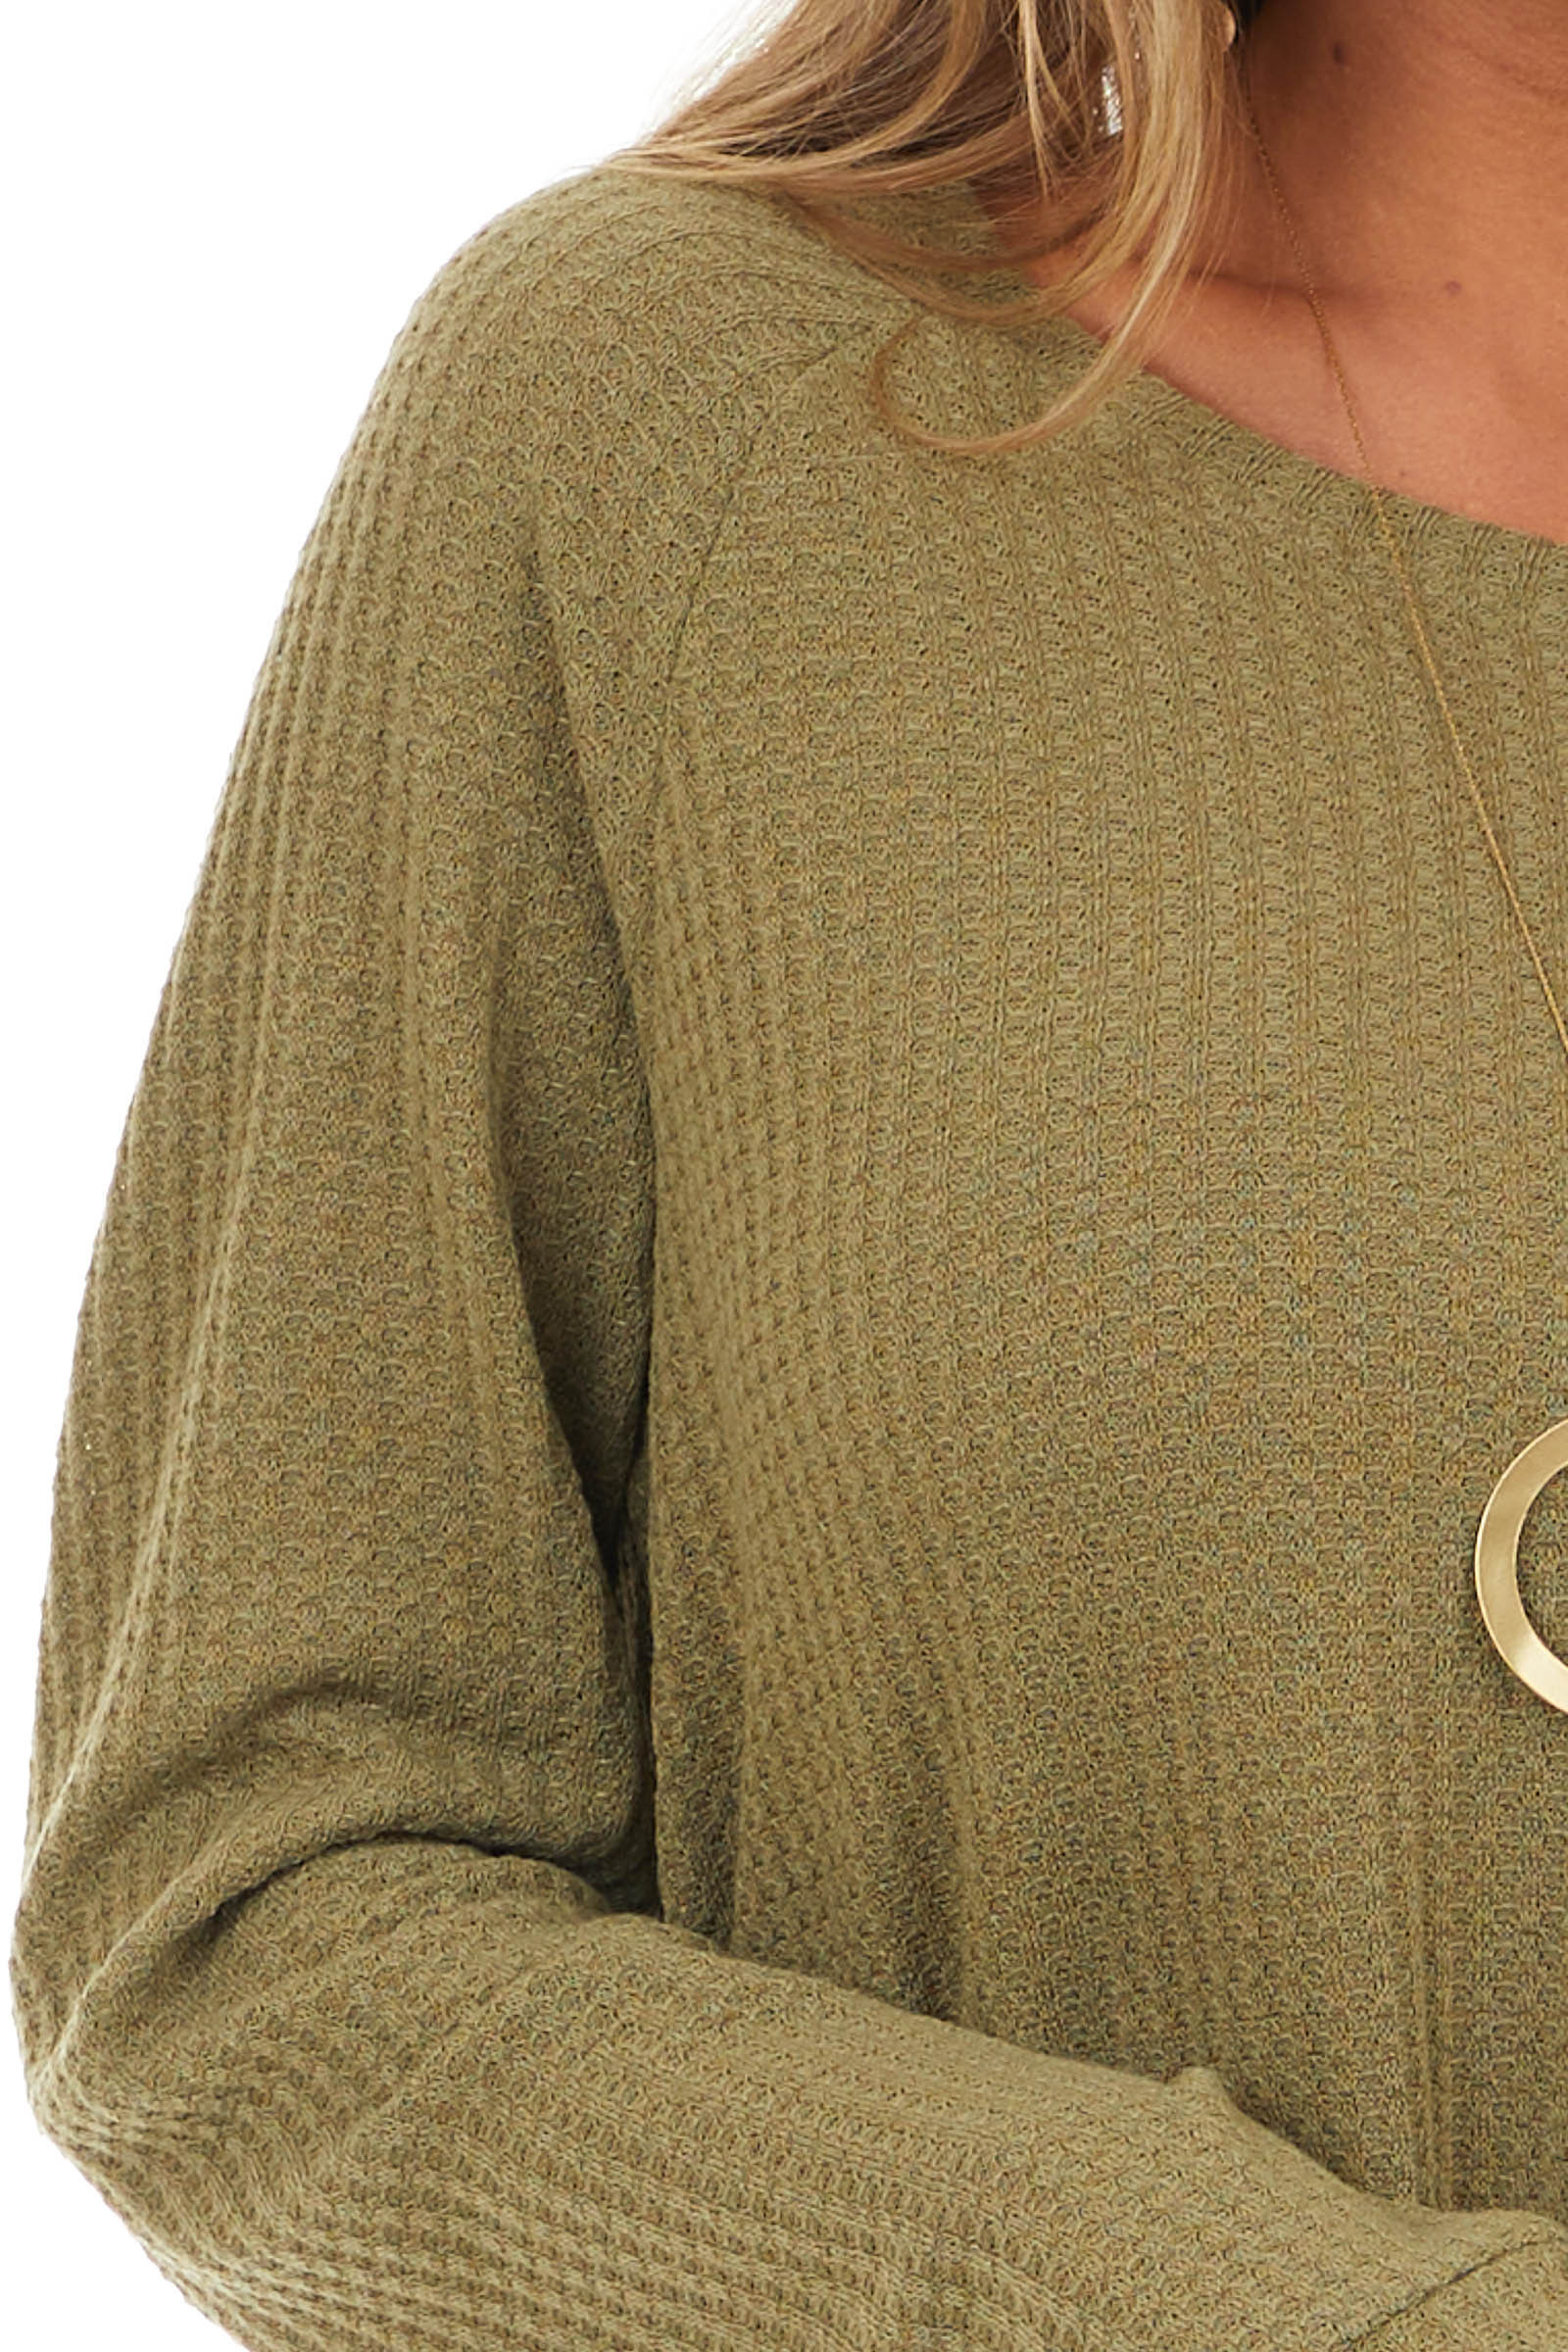 Olive Long Sleeve Waffle Knit Top with Rounded Neckline